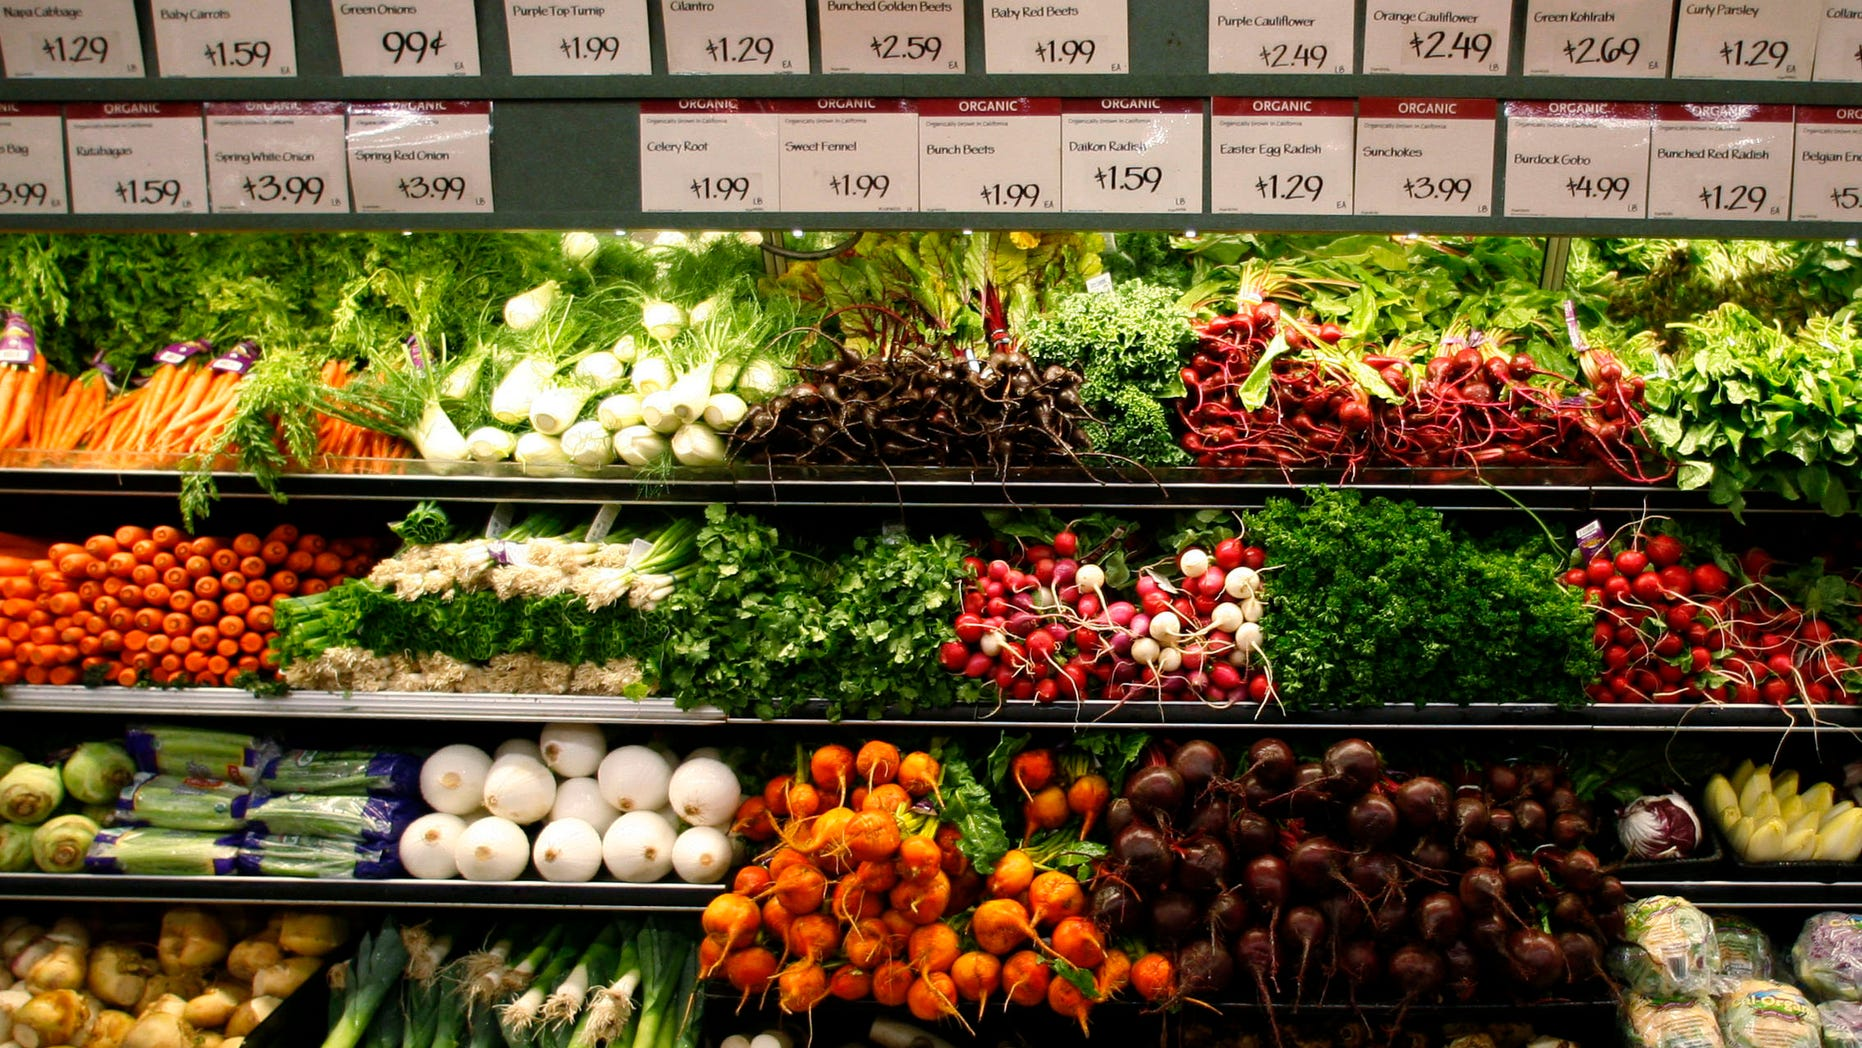 Organic vegetables are shown at a  Whole Foods Market  in LaJolla, California in this May 13, 2008 file photo. As recession tests the middle-class commitment to healthy eating and environmentally sound farming, sales of organic food are slowing, but so far not falling. How green are our wallets? To match feature FINANCIAL/FOOD-ORGANIC      REUTERS/Mike Blake/Files      (UNITED STATES) - RTR23YED